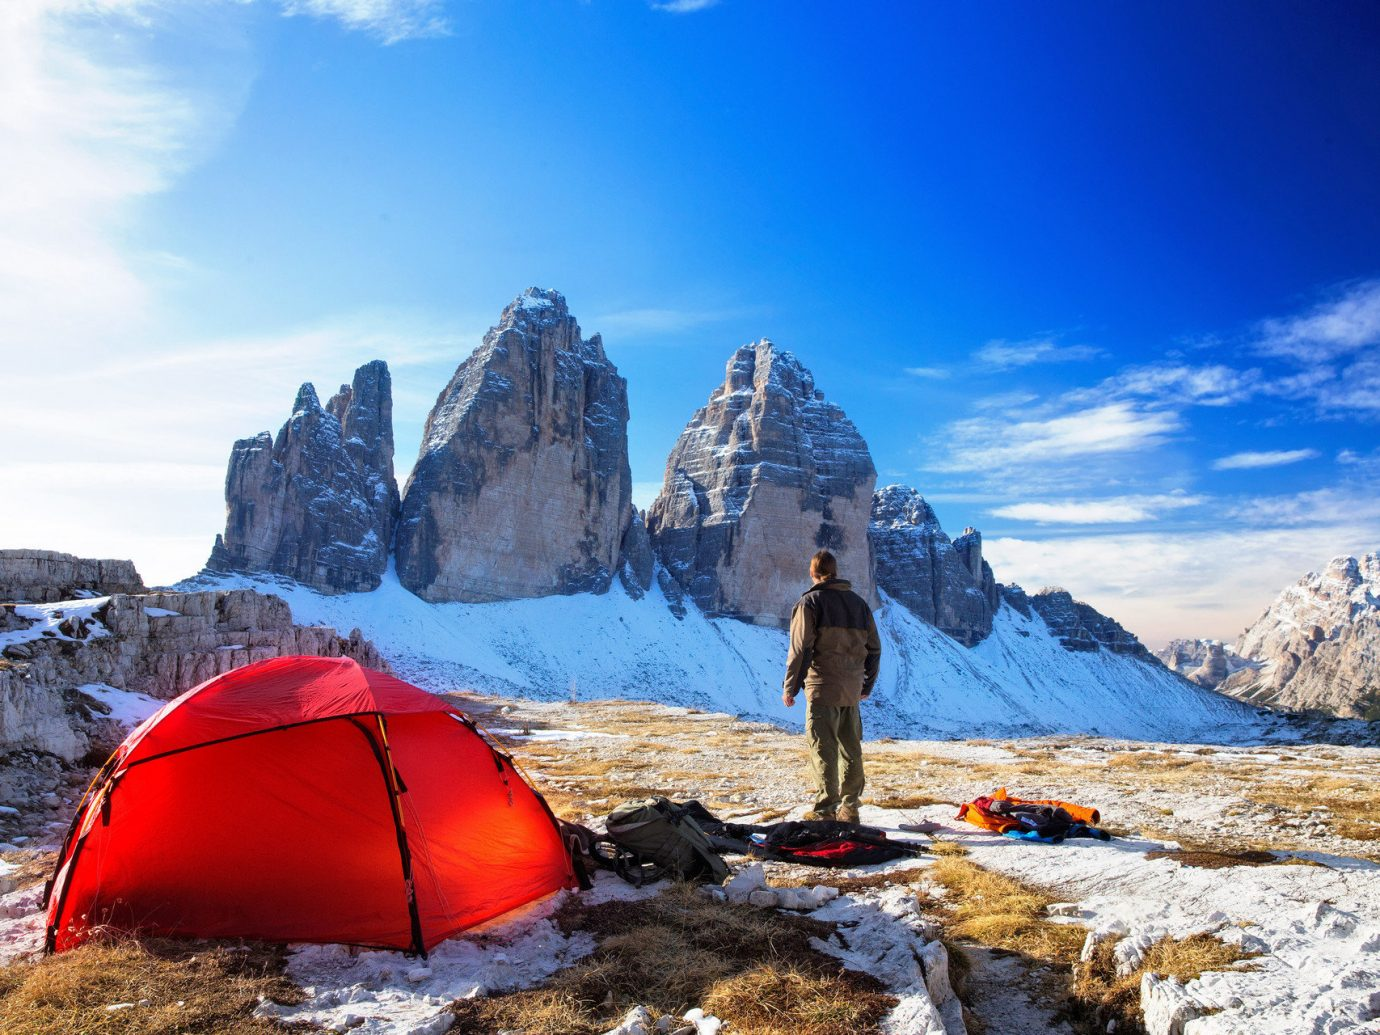 Offbeat outdoor sky snow mountainous landforms mountain umbrella wilderness mountain range Winter mountaineering season red Adventure outdoor recreation sports tent alps recreation plateau summit backpacking walking ridge accessory